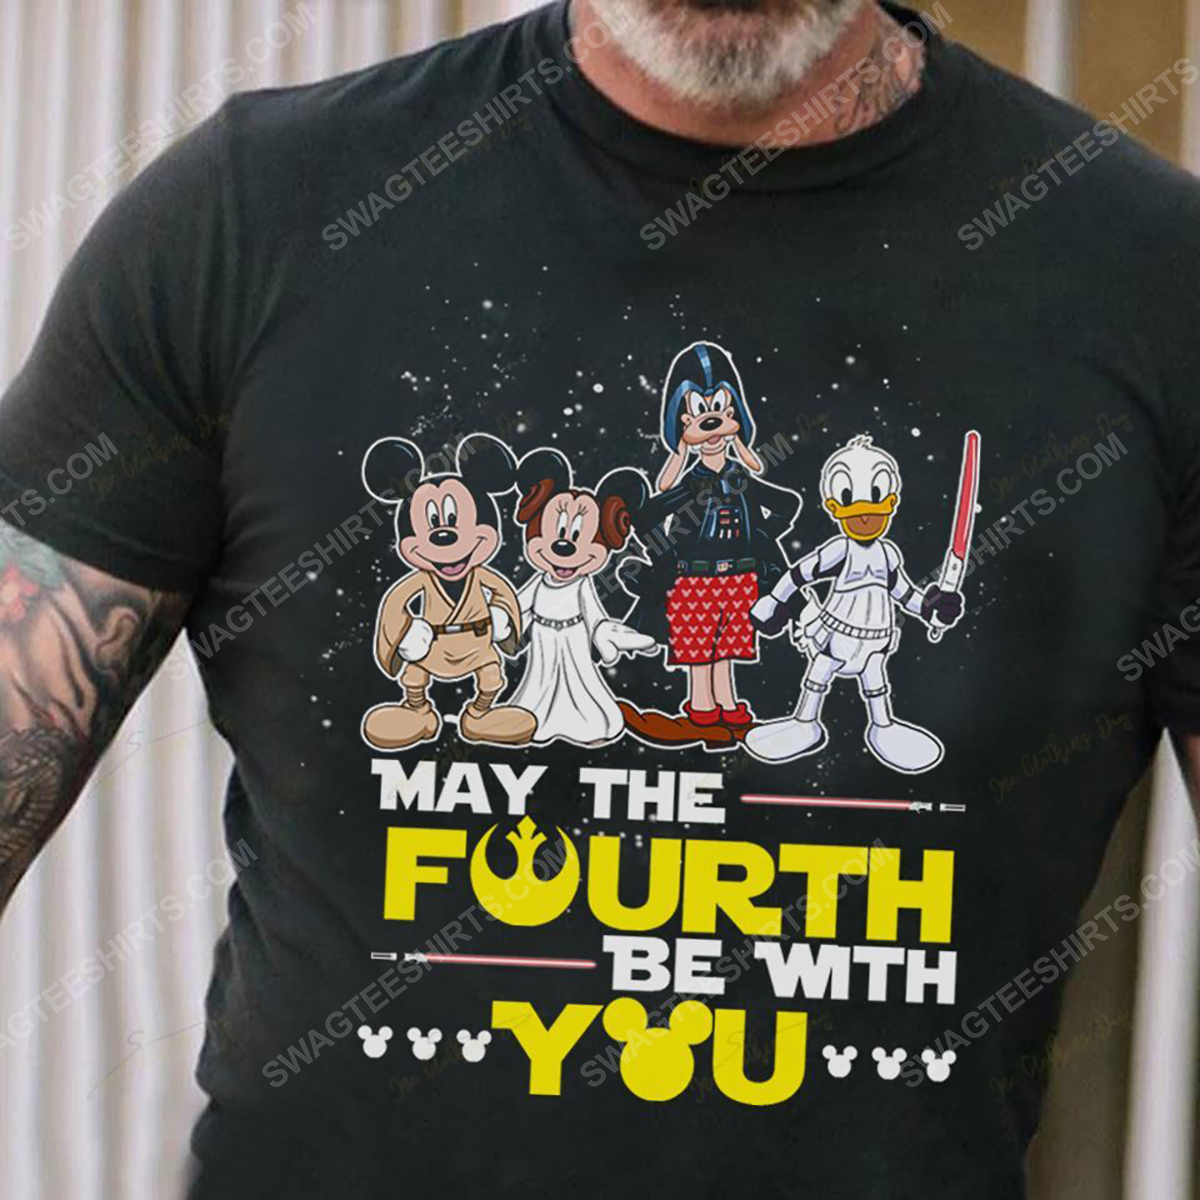 Star wars may the force be with you and mickey mouse shirt 5(1)